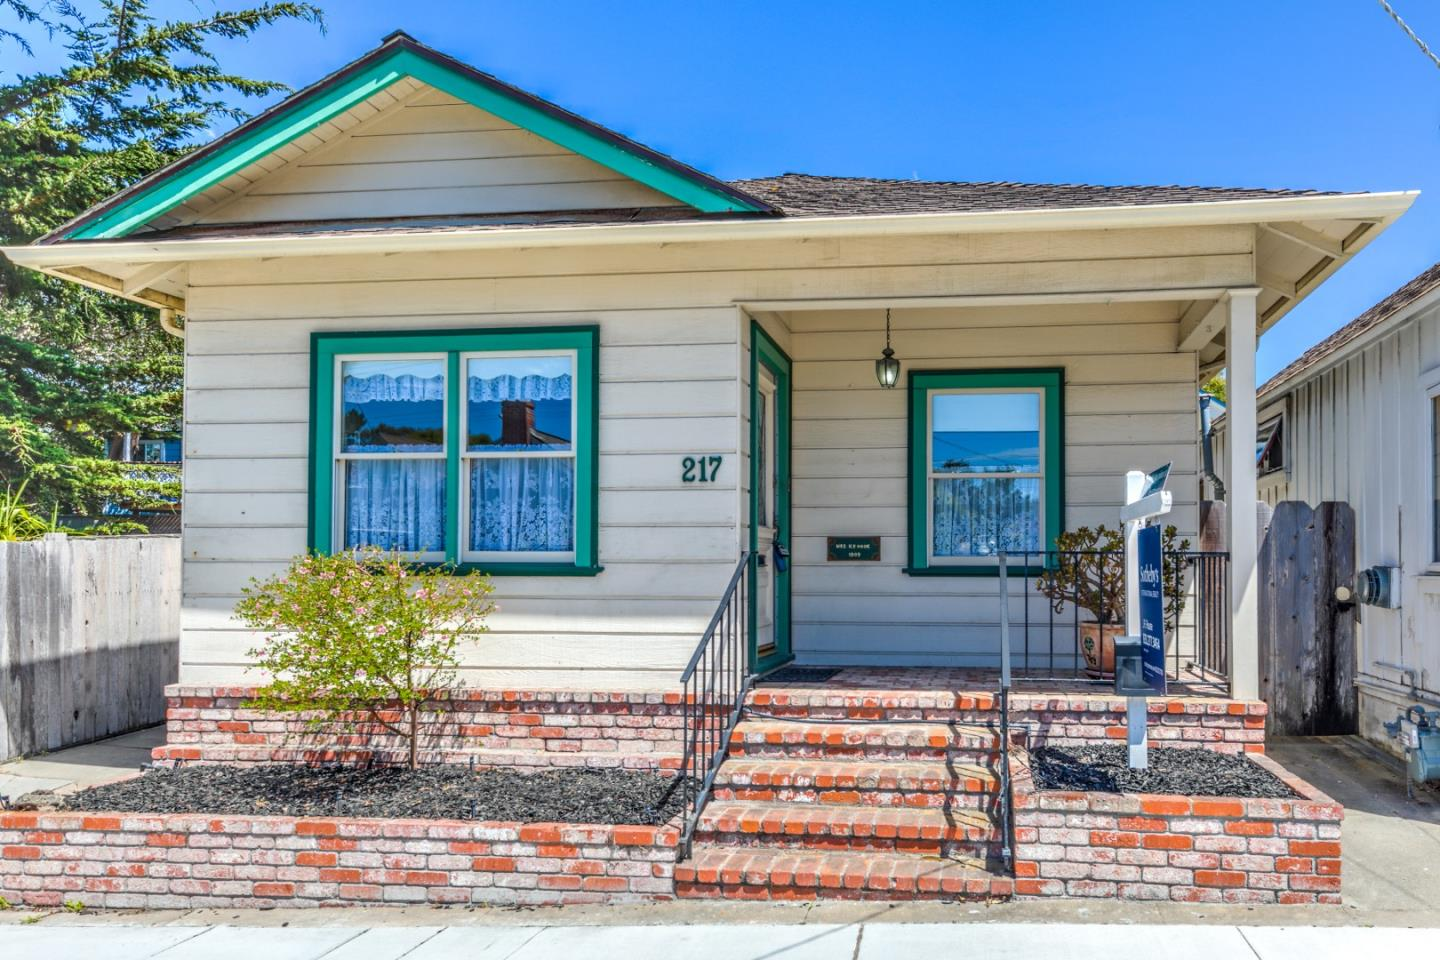 217 Park St, Pacific Grove, CA 93950 - MLS 81713618 - Coldwell Banker